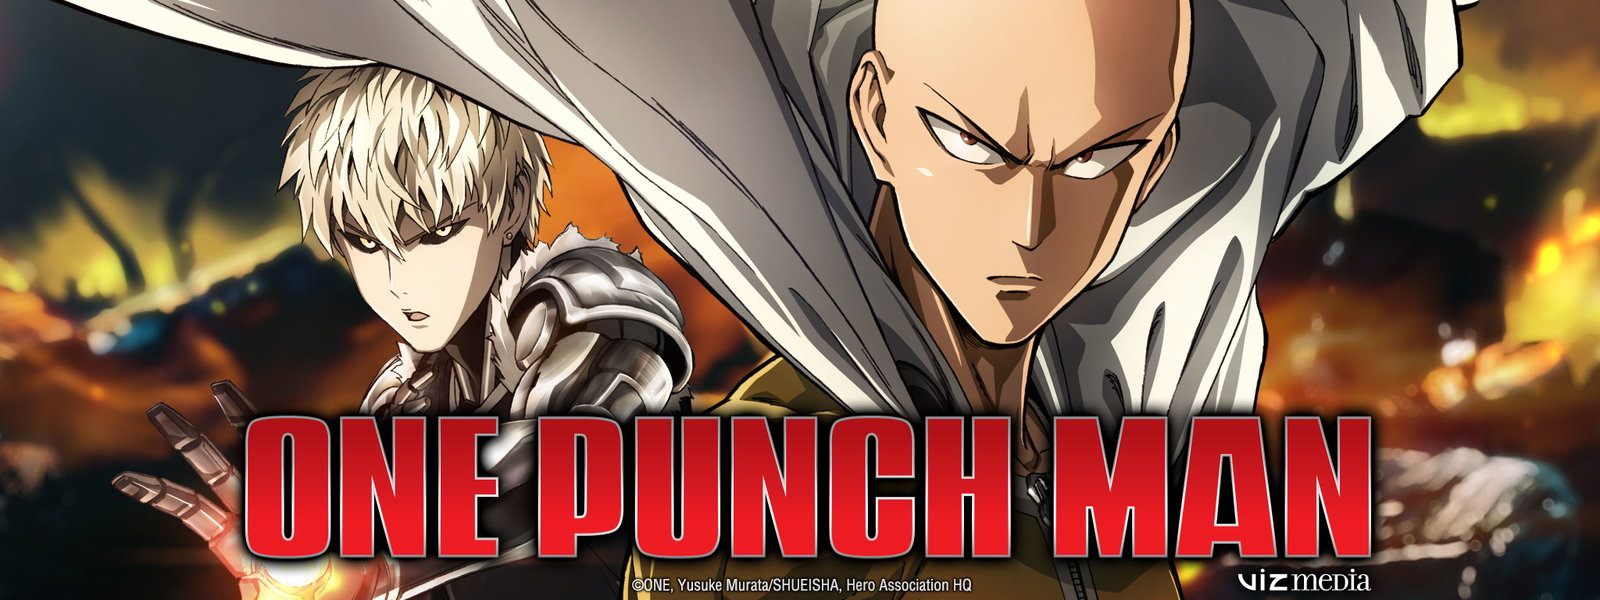 top 10 animes, one punch man